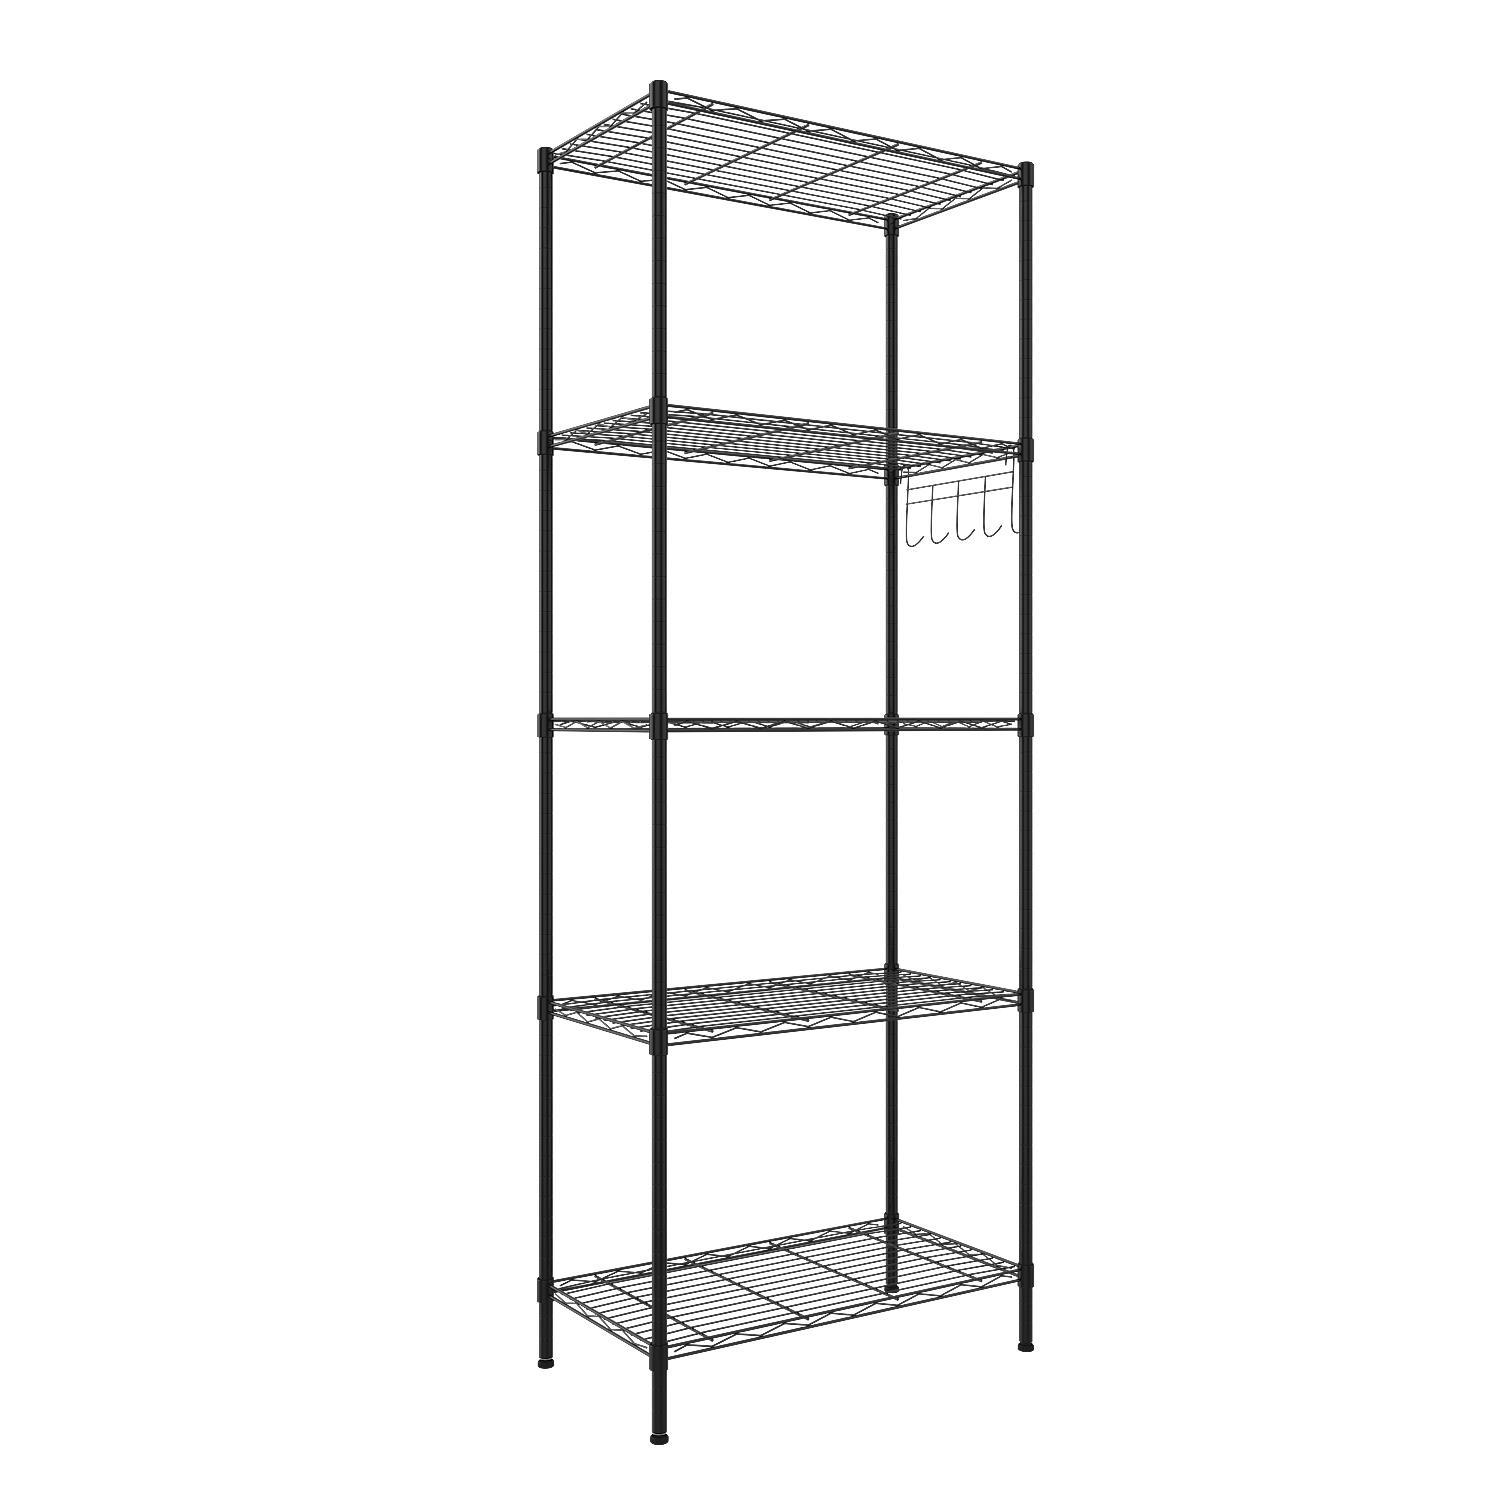 5-Tier Wire Shelving Storage Organizer Rack Adjustable Height with Side Hooks 2